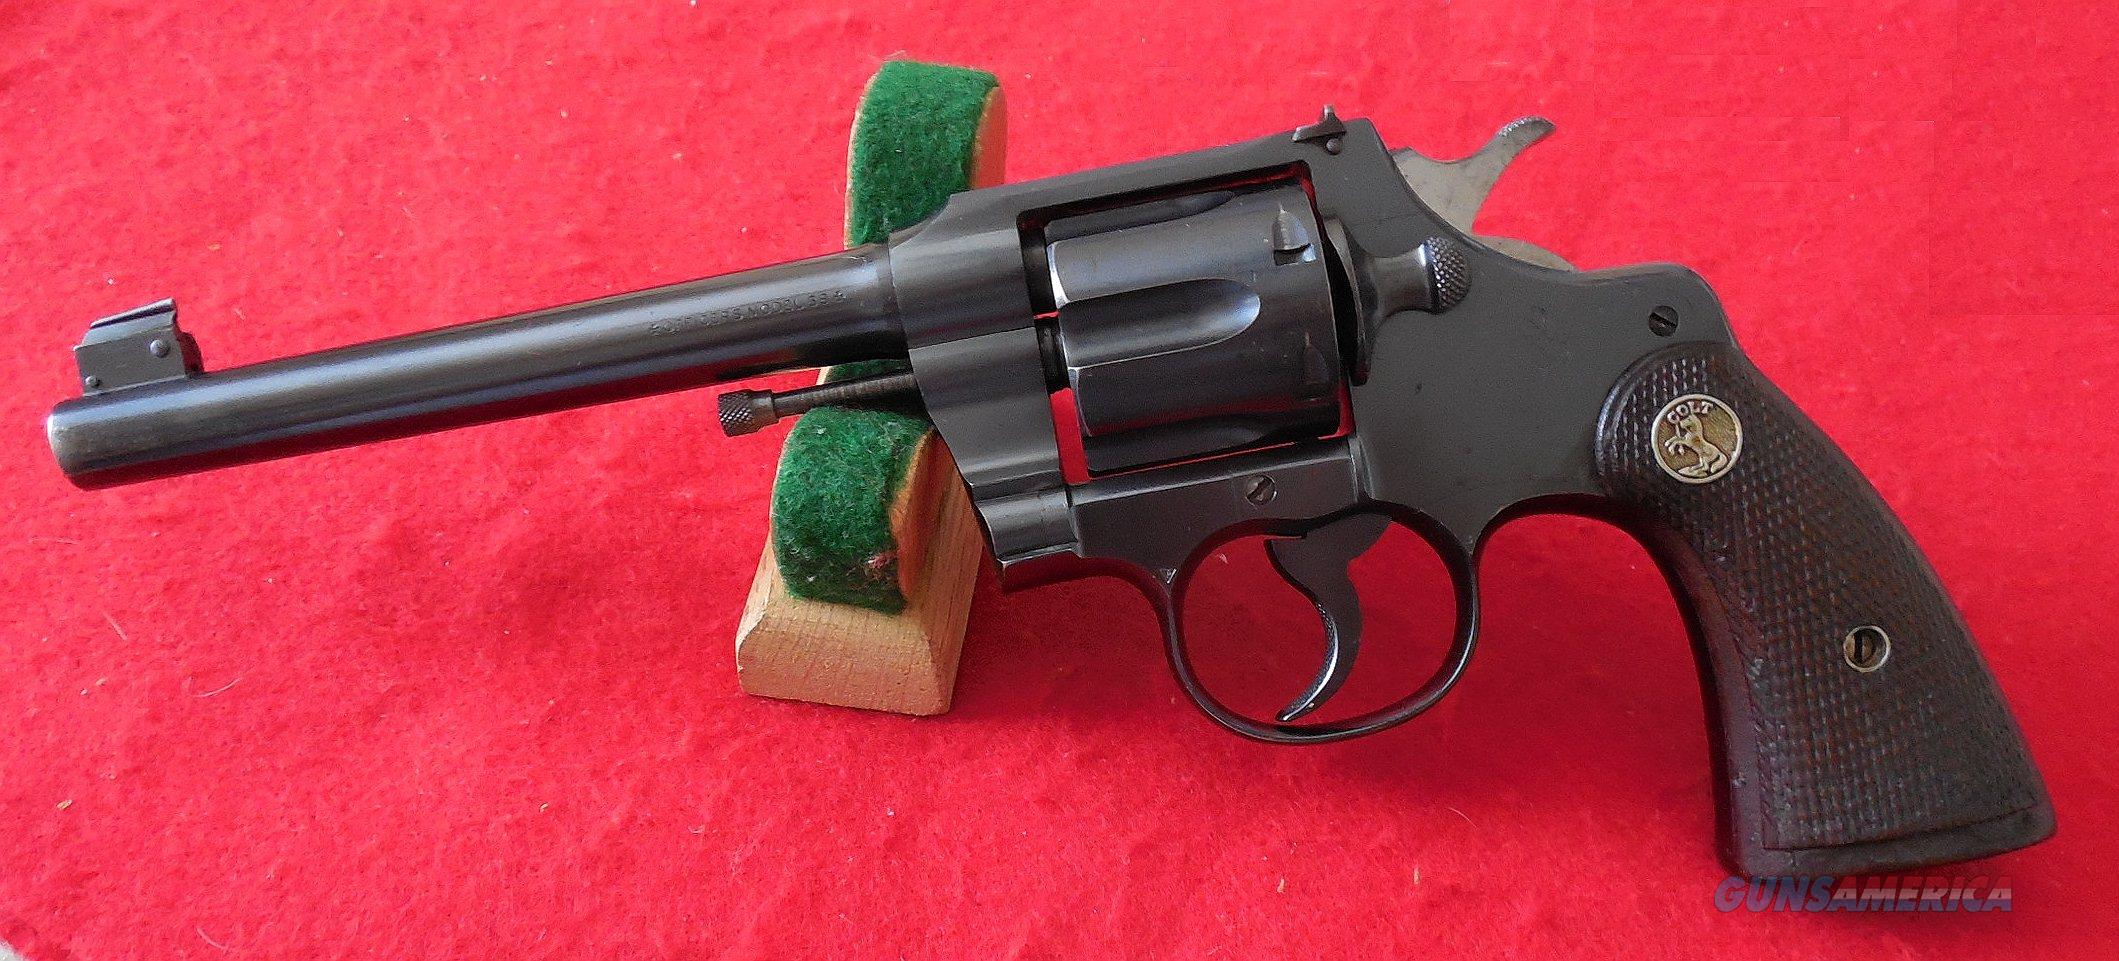 Colt Officers Model Target Revolver